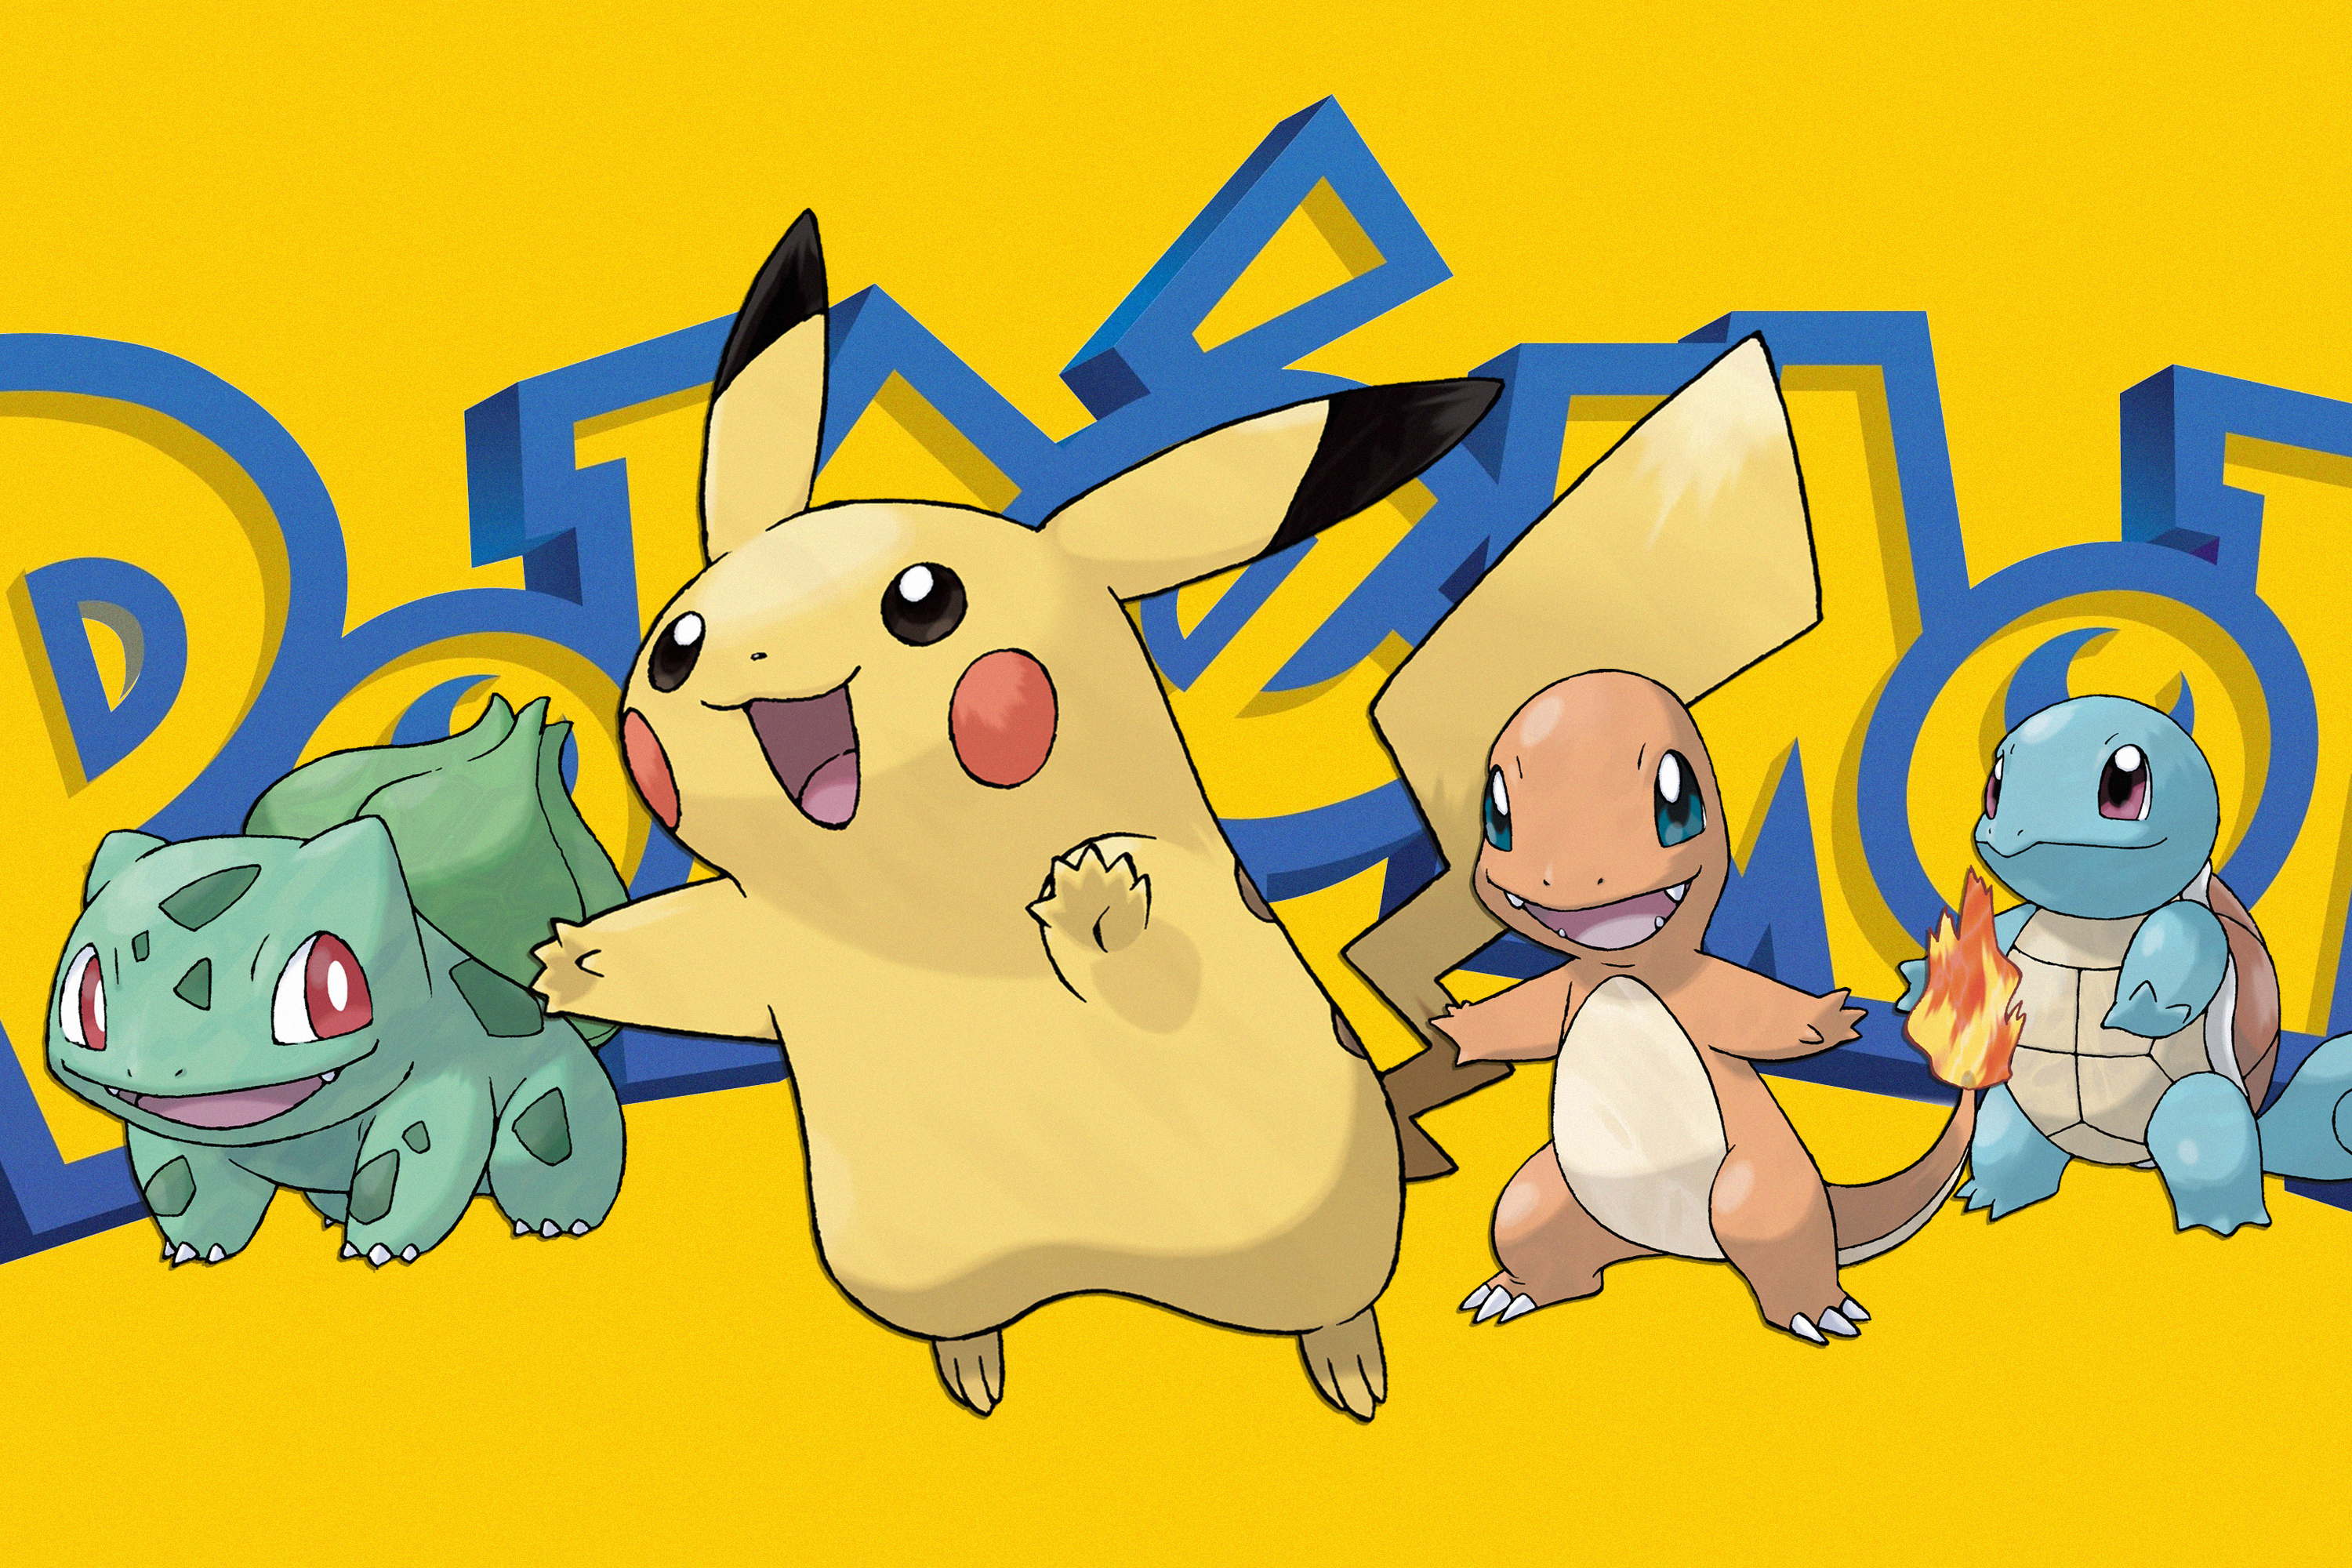 Graphic featuring Pokemon characters on a yellow background and the Pokemon logo